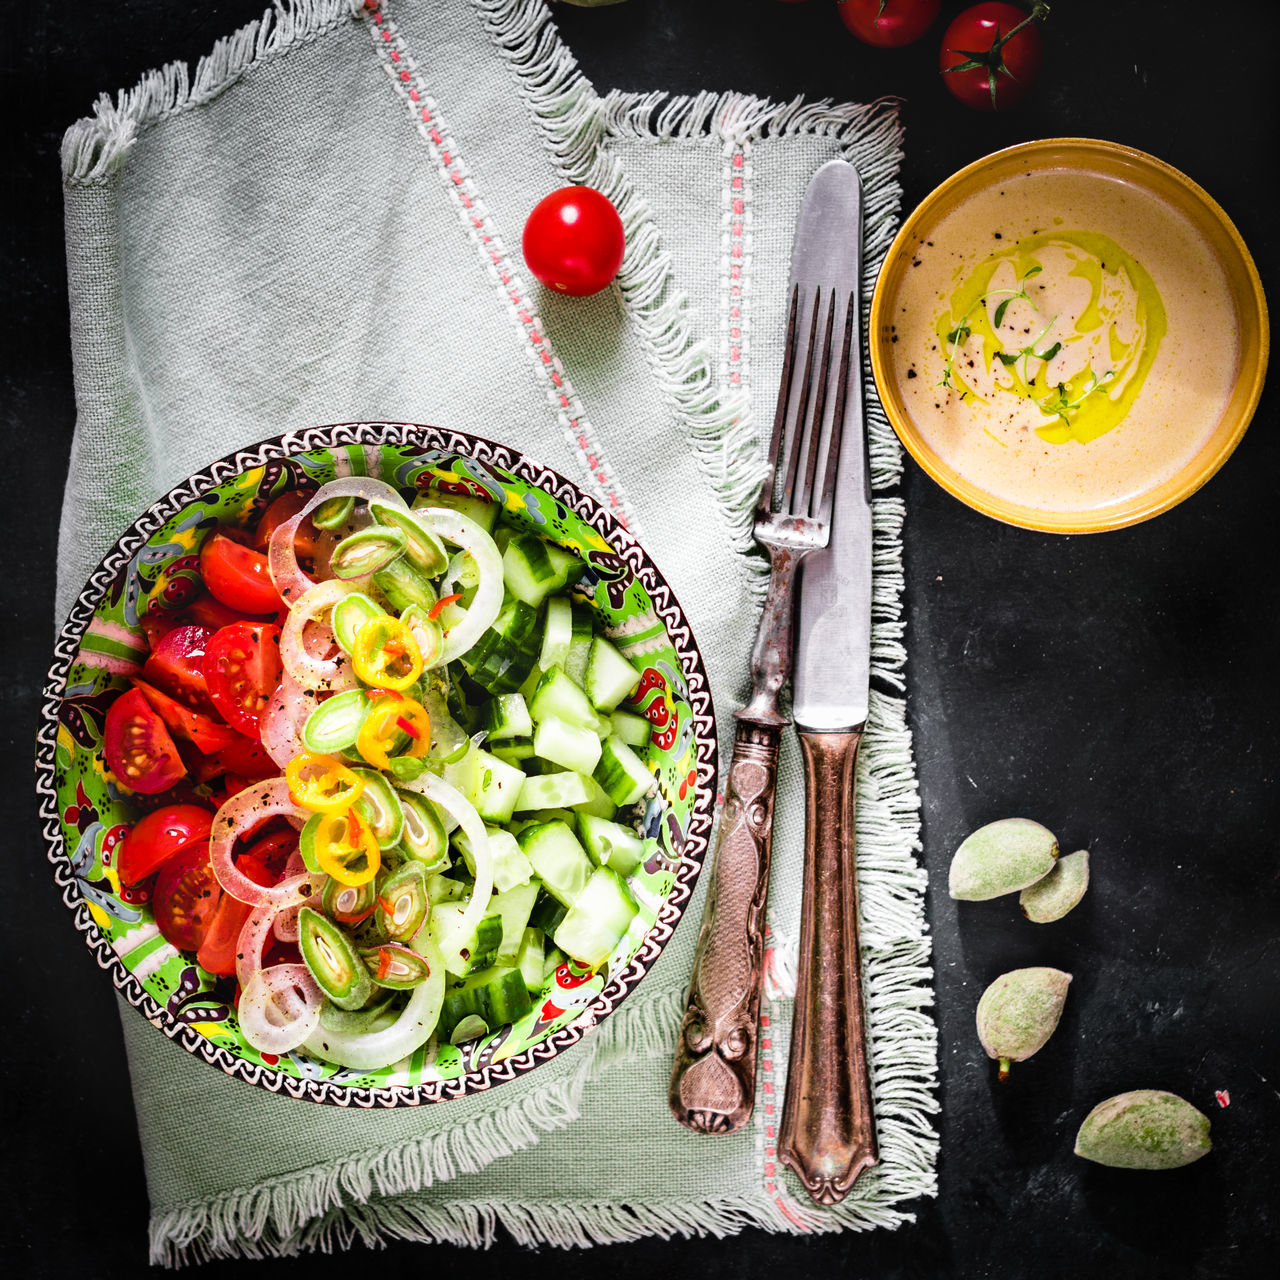 food and drink, healthy eating, salad, freshness, plate, vegetable, food, fork, high angle view, indoors, slice, cucumber, fruit, tomato, lettuce, no people, ready-to-eat, directly above, meal, dieting, healthy lifestyle, vegetarian food, close-up, day